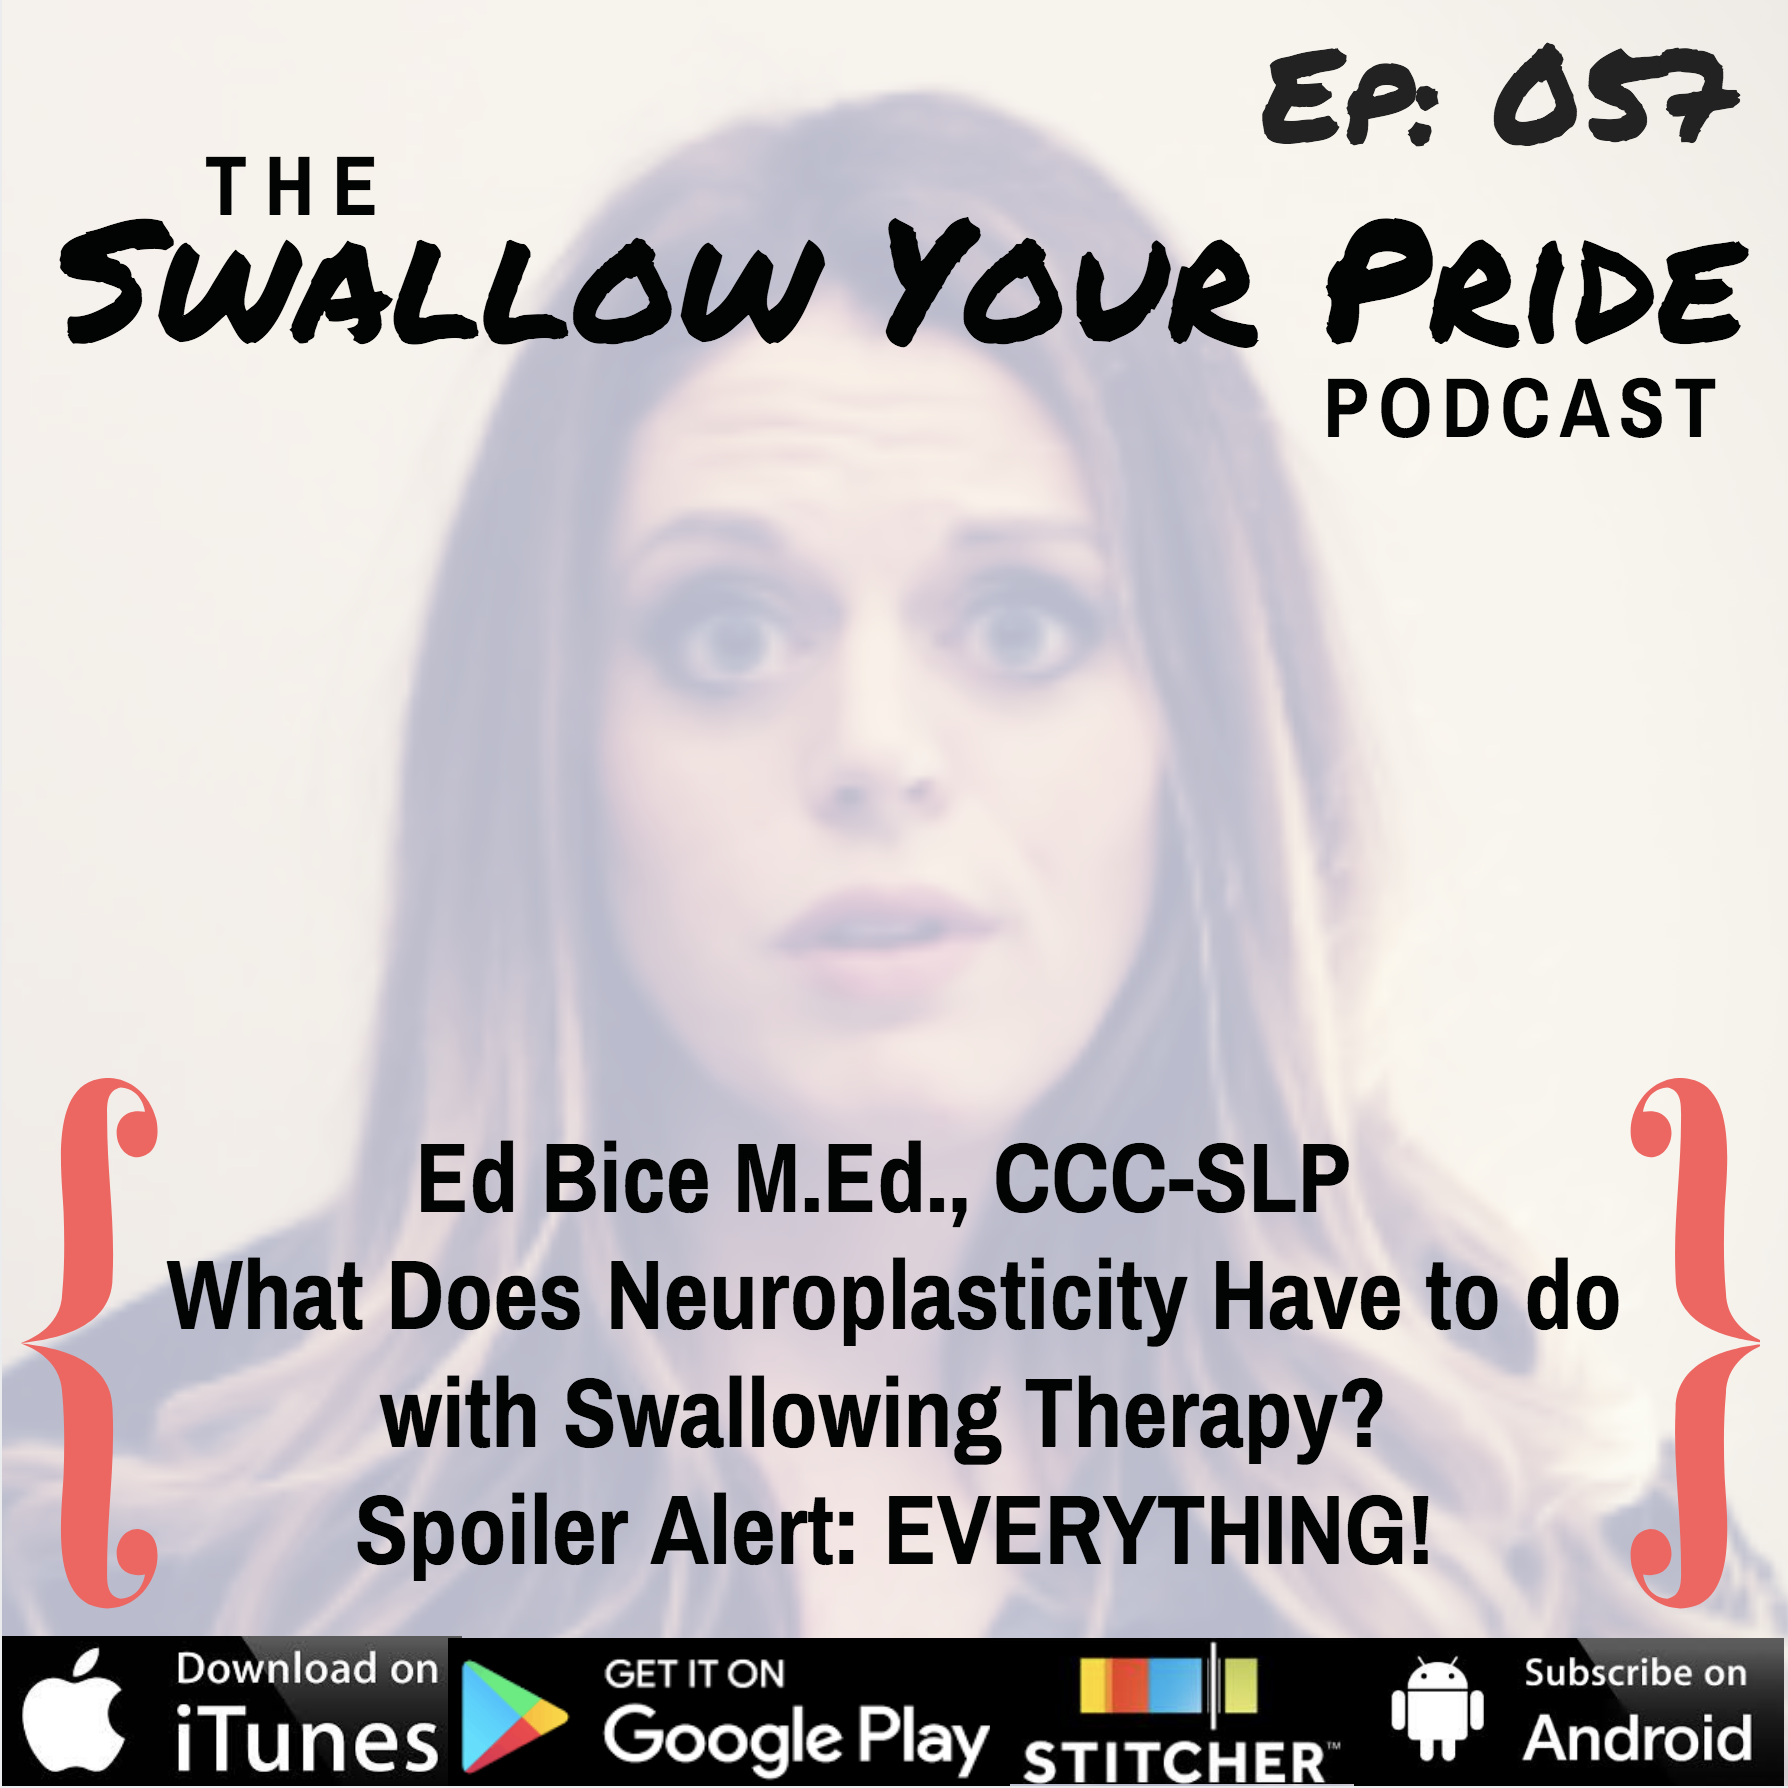 057 – Ed Bice M.Ed., CCC-SLP – What Does Neuroplasticity Have to do with Swallowing Therapy? Spoiler Alert: EVERYTHING!